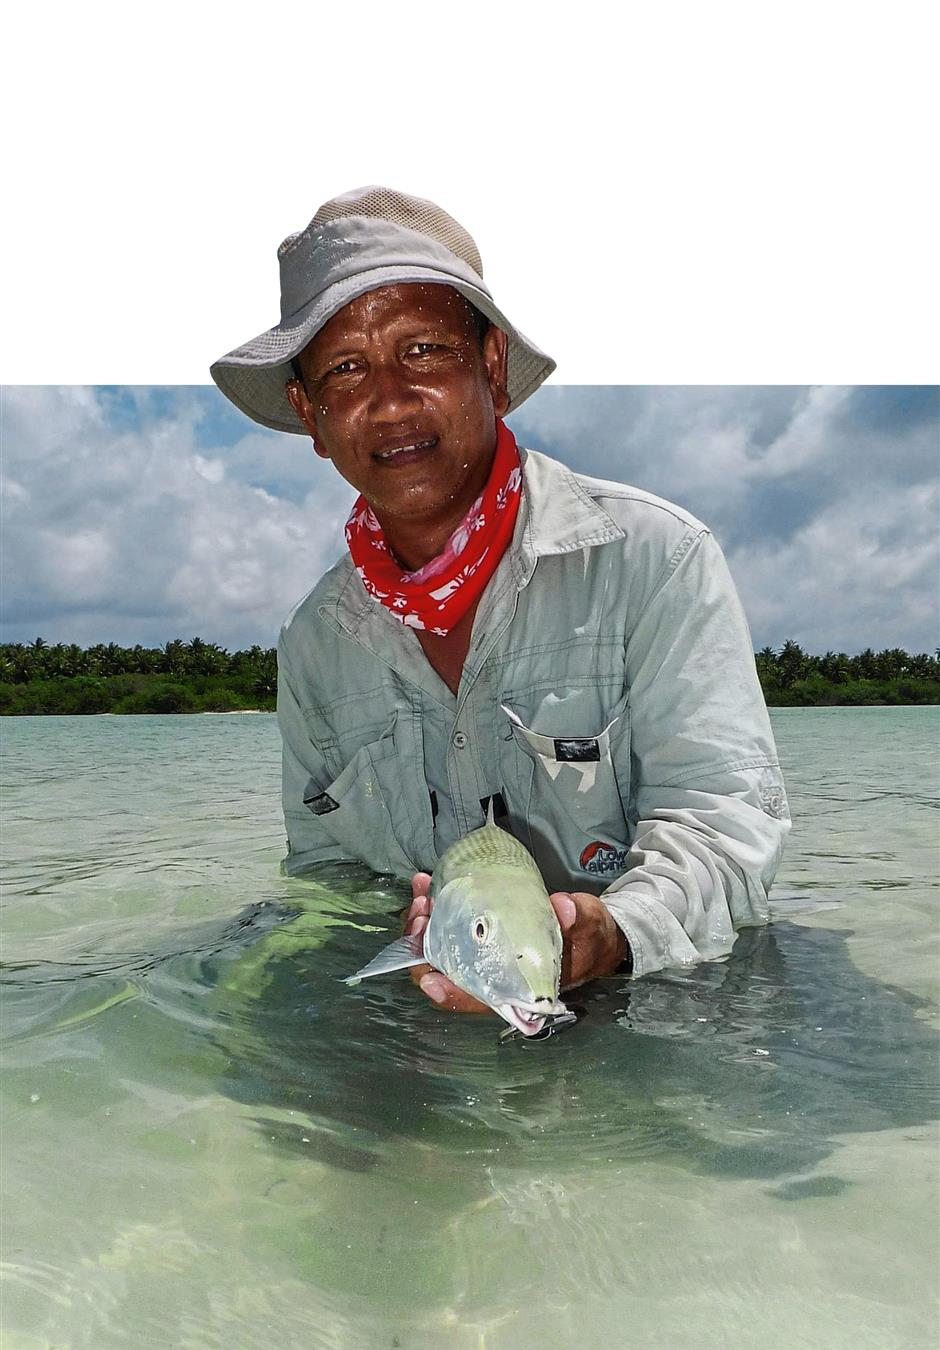 An angler showing his catch. Fishing enthusiasts are prepared to pay top dollar to hunt the bonefish, which are found only in a few places.